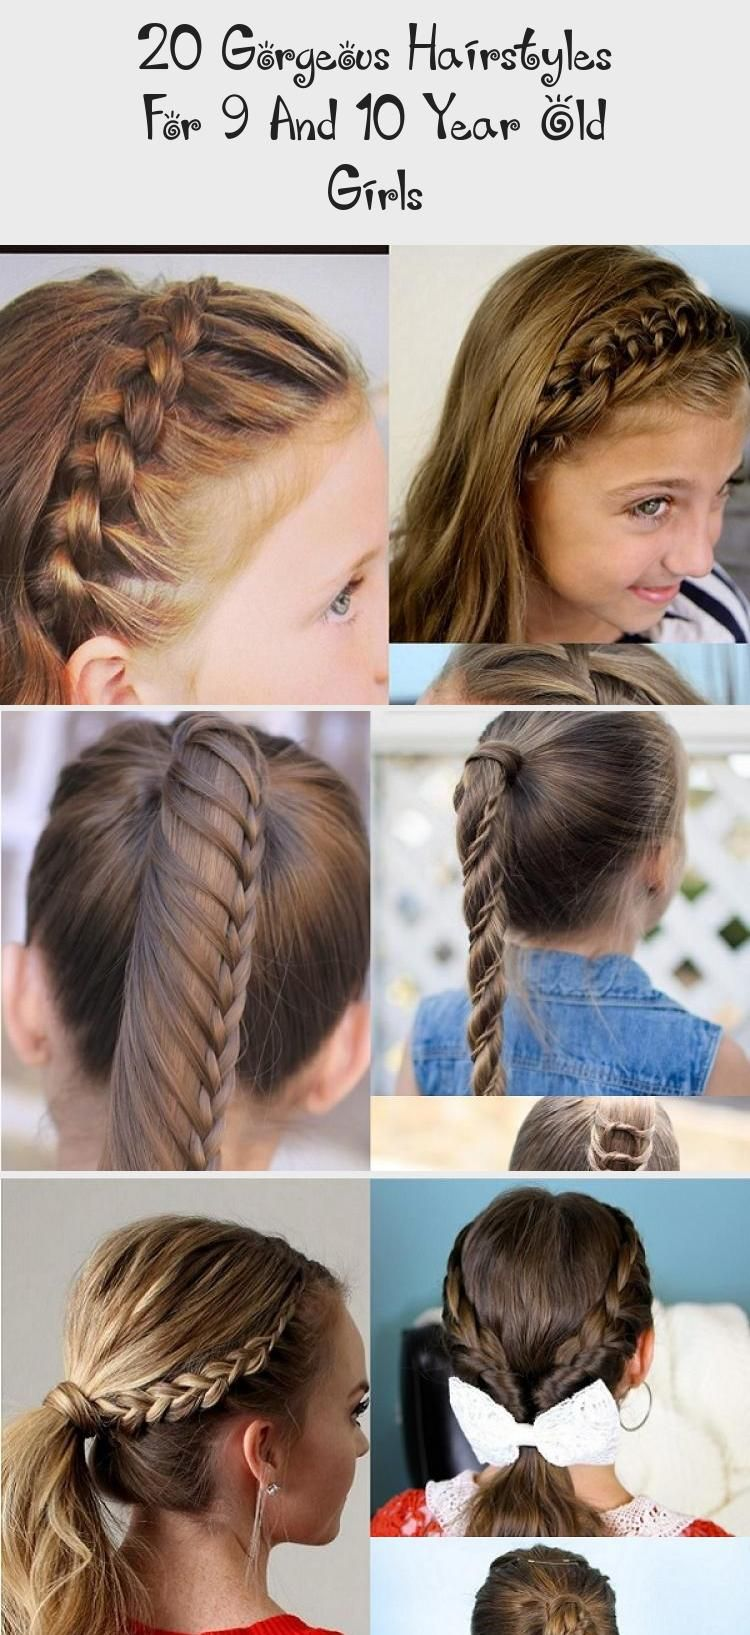 20 Gorgeous Hairstyles For 9 And 10 Year Old Girls Child Insider Fasteverydayhairstyles Everydayhairstyles V In 2020 Hair Styles Gorgeous Hair Everyday Hairstyles